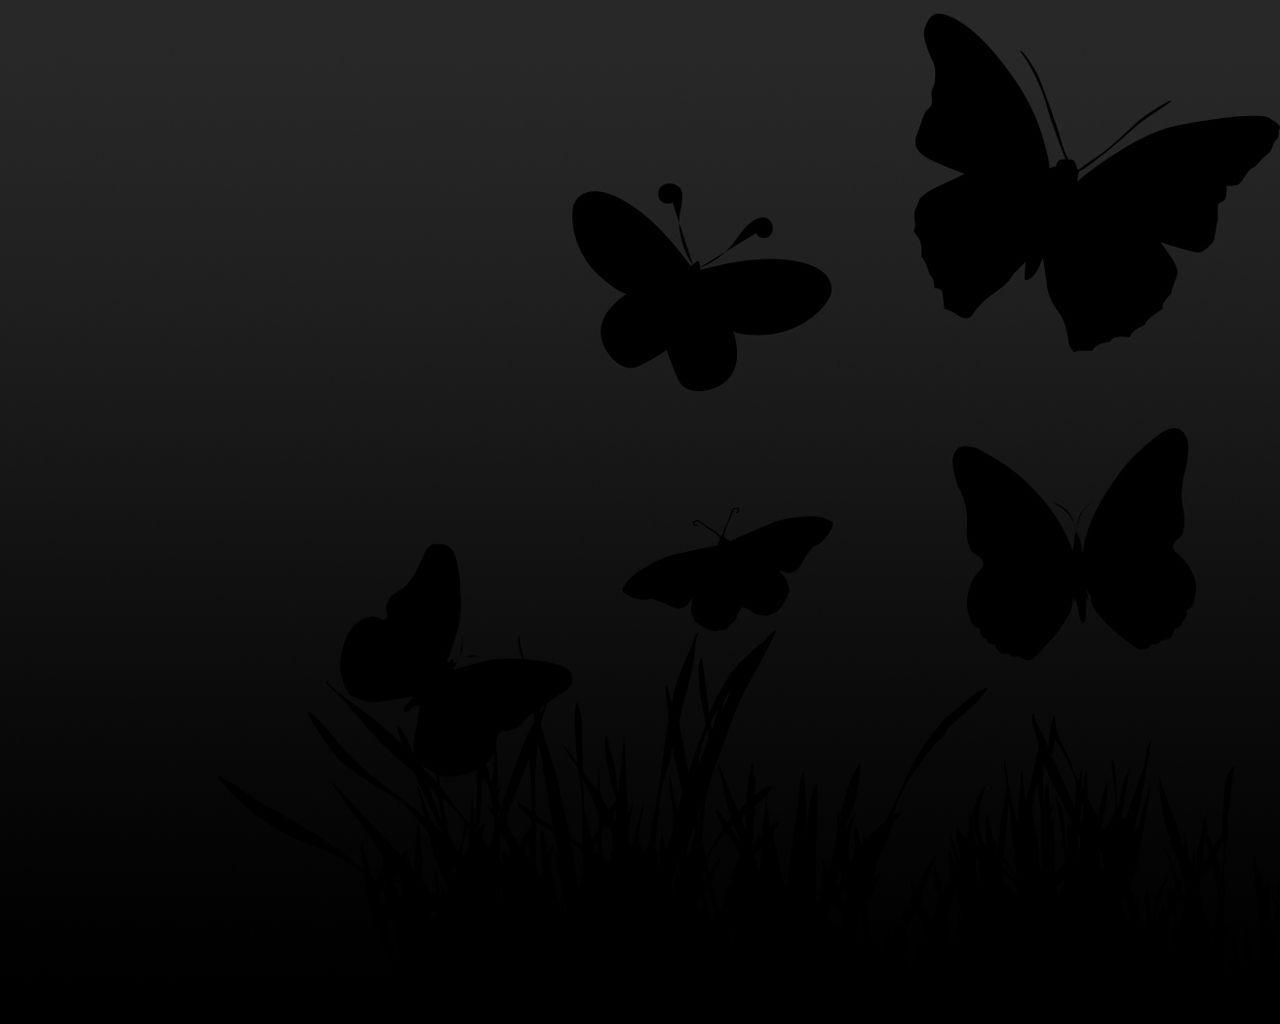 Wallpapers For Black Butterfly Background Designs